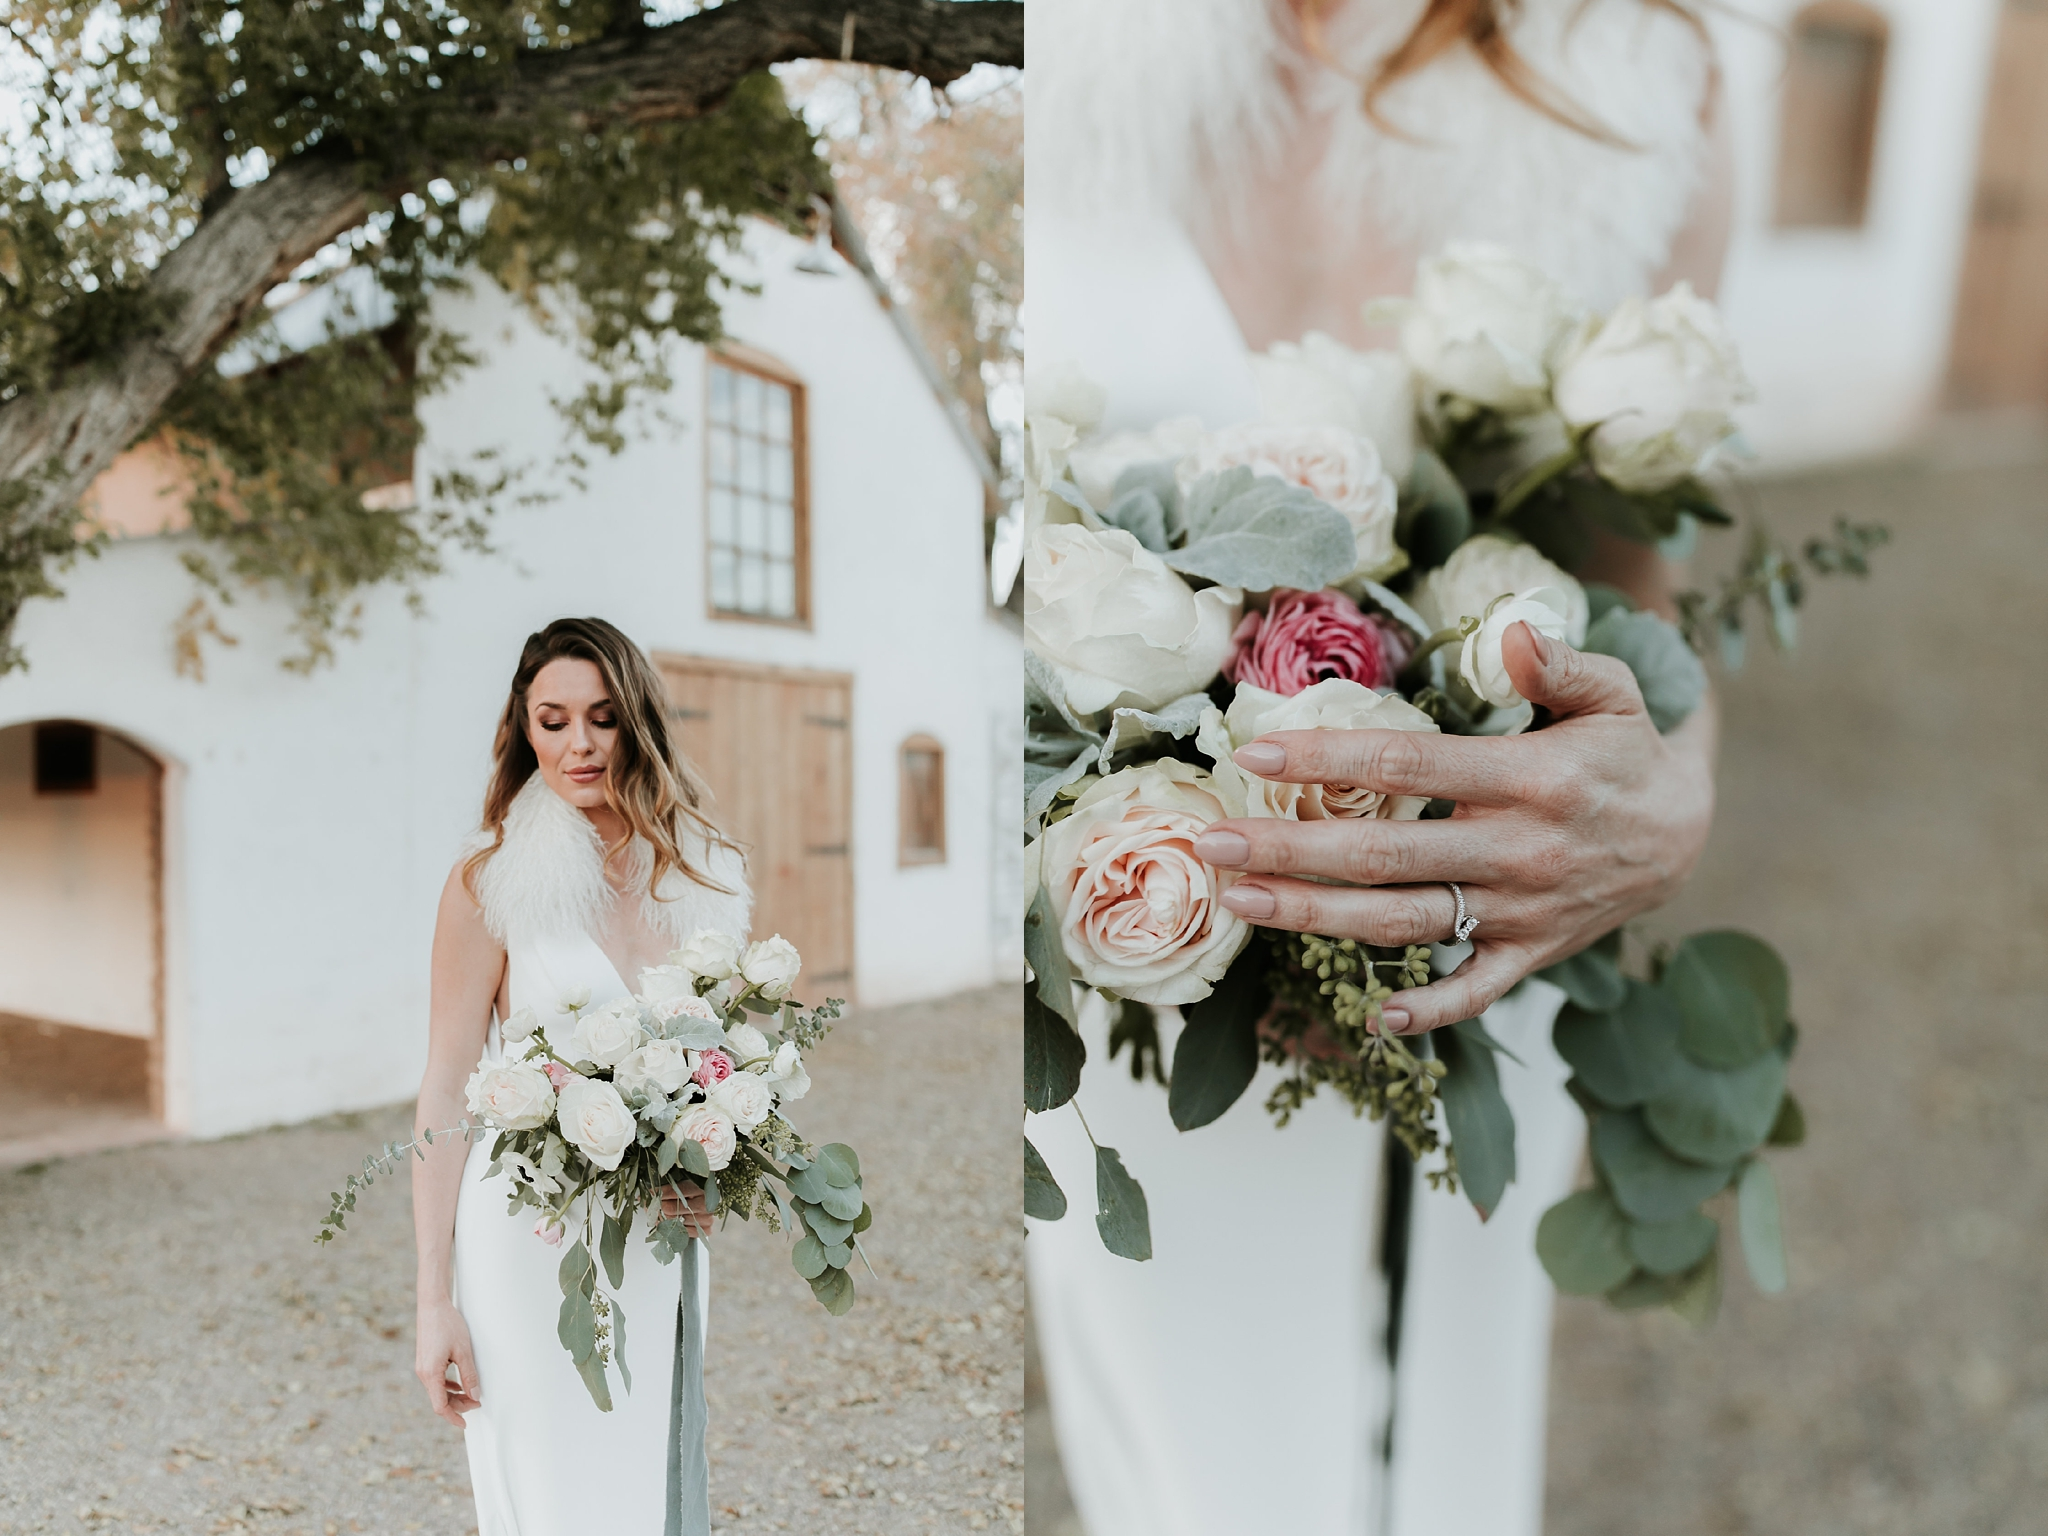 Alicia+lucia+photography+-+albuquerque+wedding+photographer+-+santa+fe+wedding+photography+-+new+mexico+wedding+photographer+-+bridal+shoot+-+styled+bridal+shoot+-+southwest+bride_0006.jpg